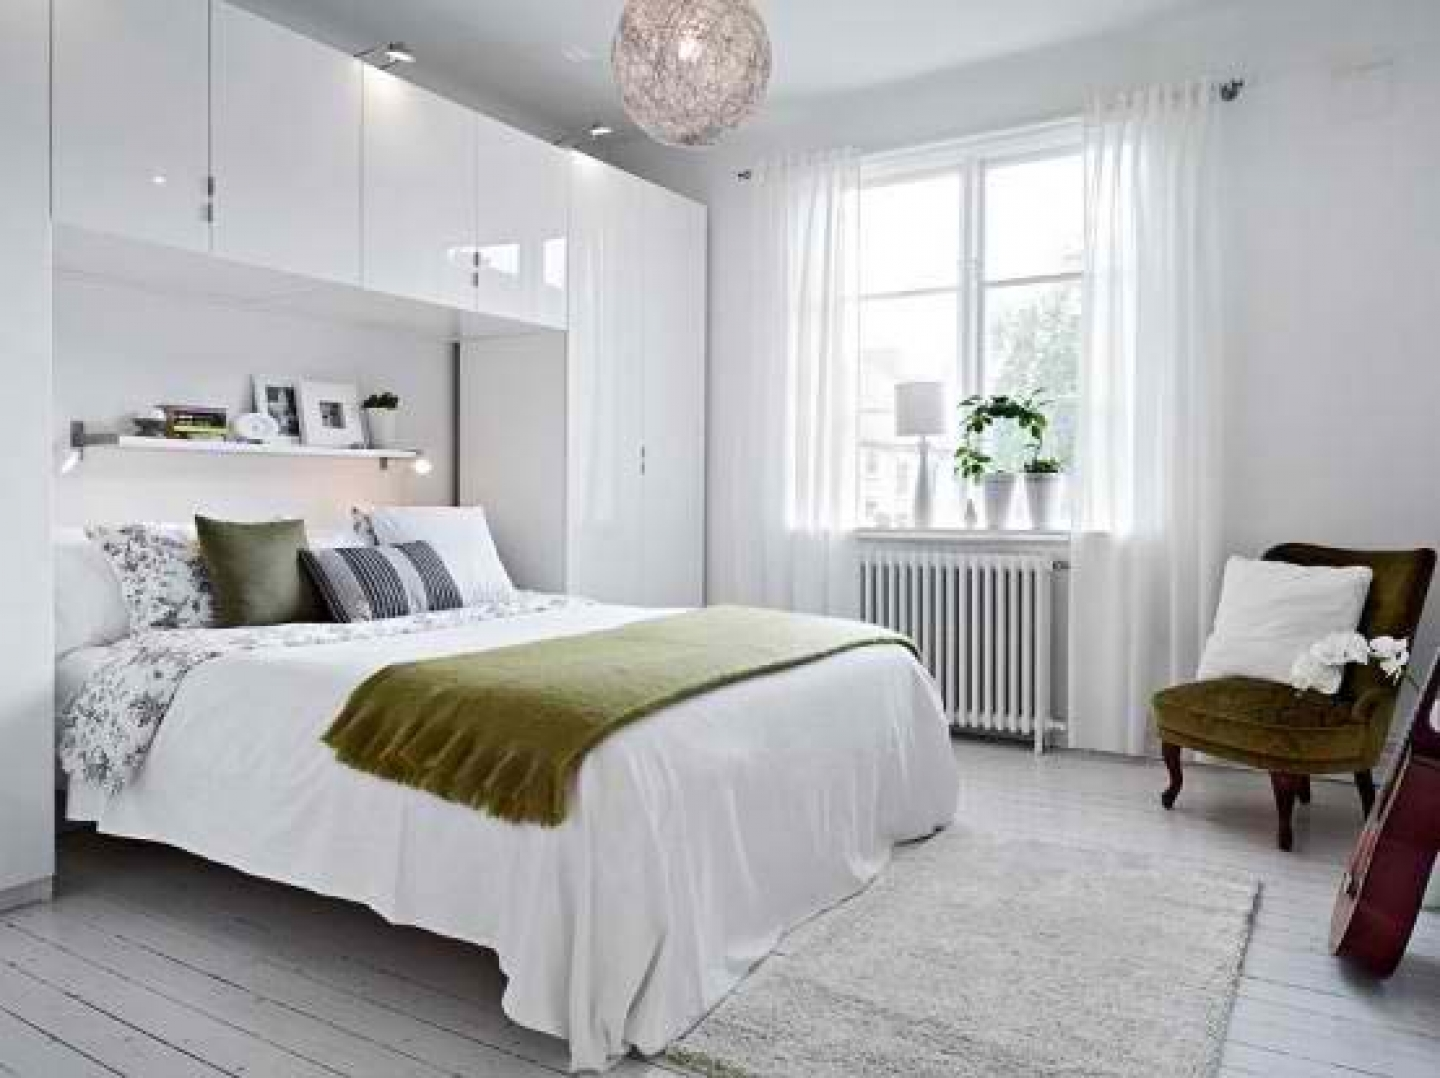 Bright-Bedroom-Decorating-Ideas-For-Studio-Apartments